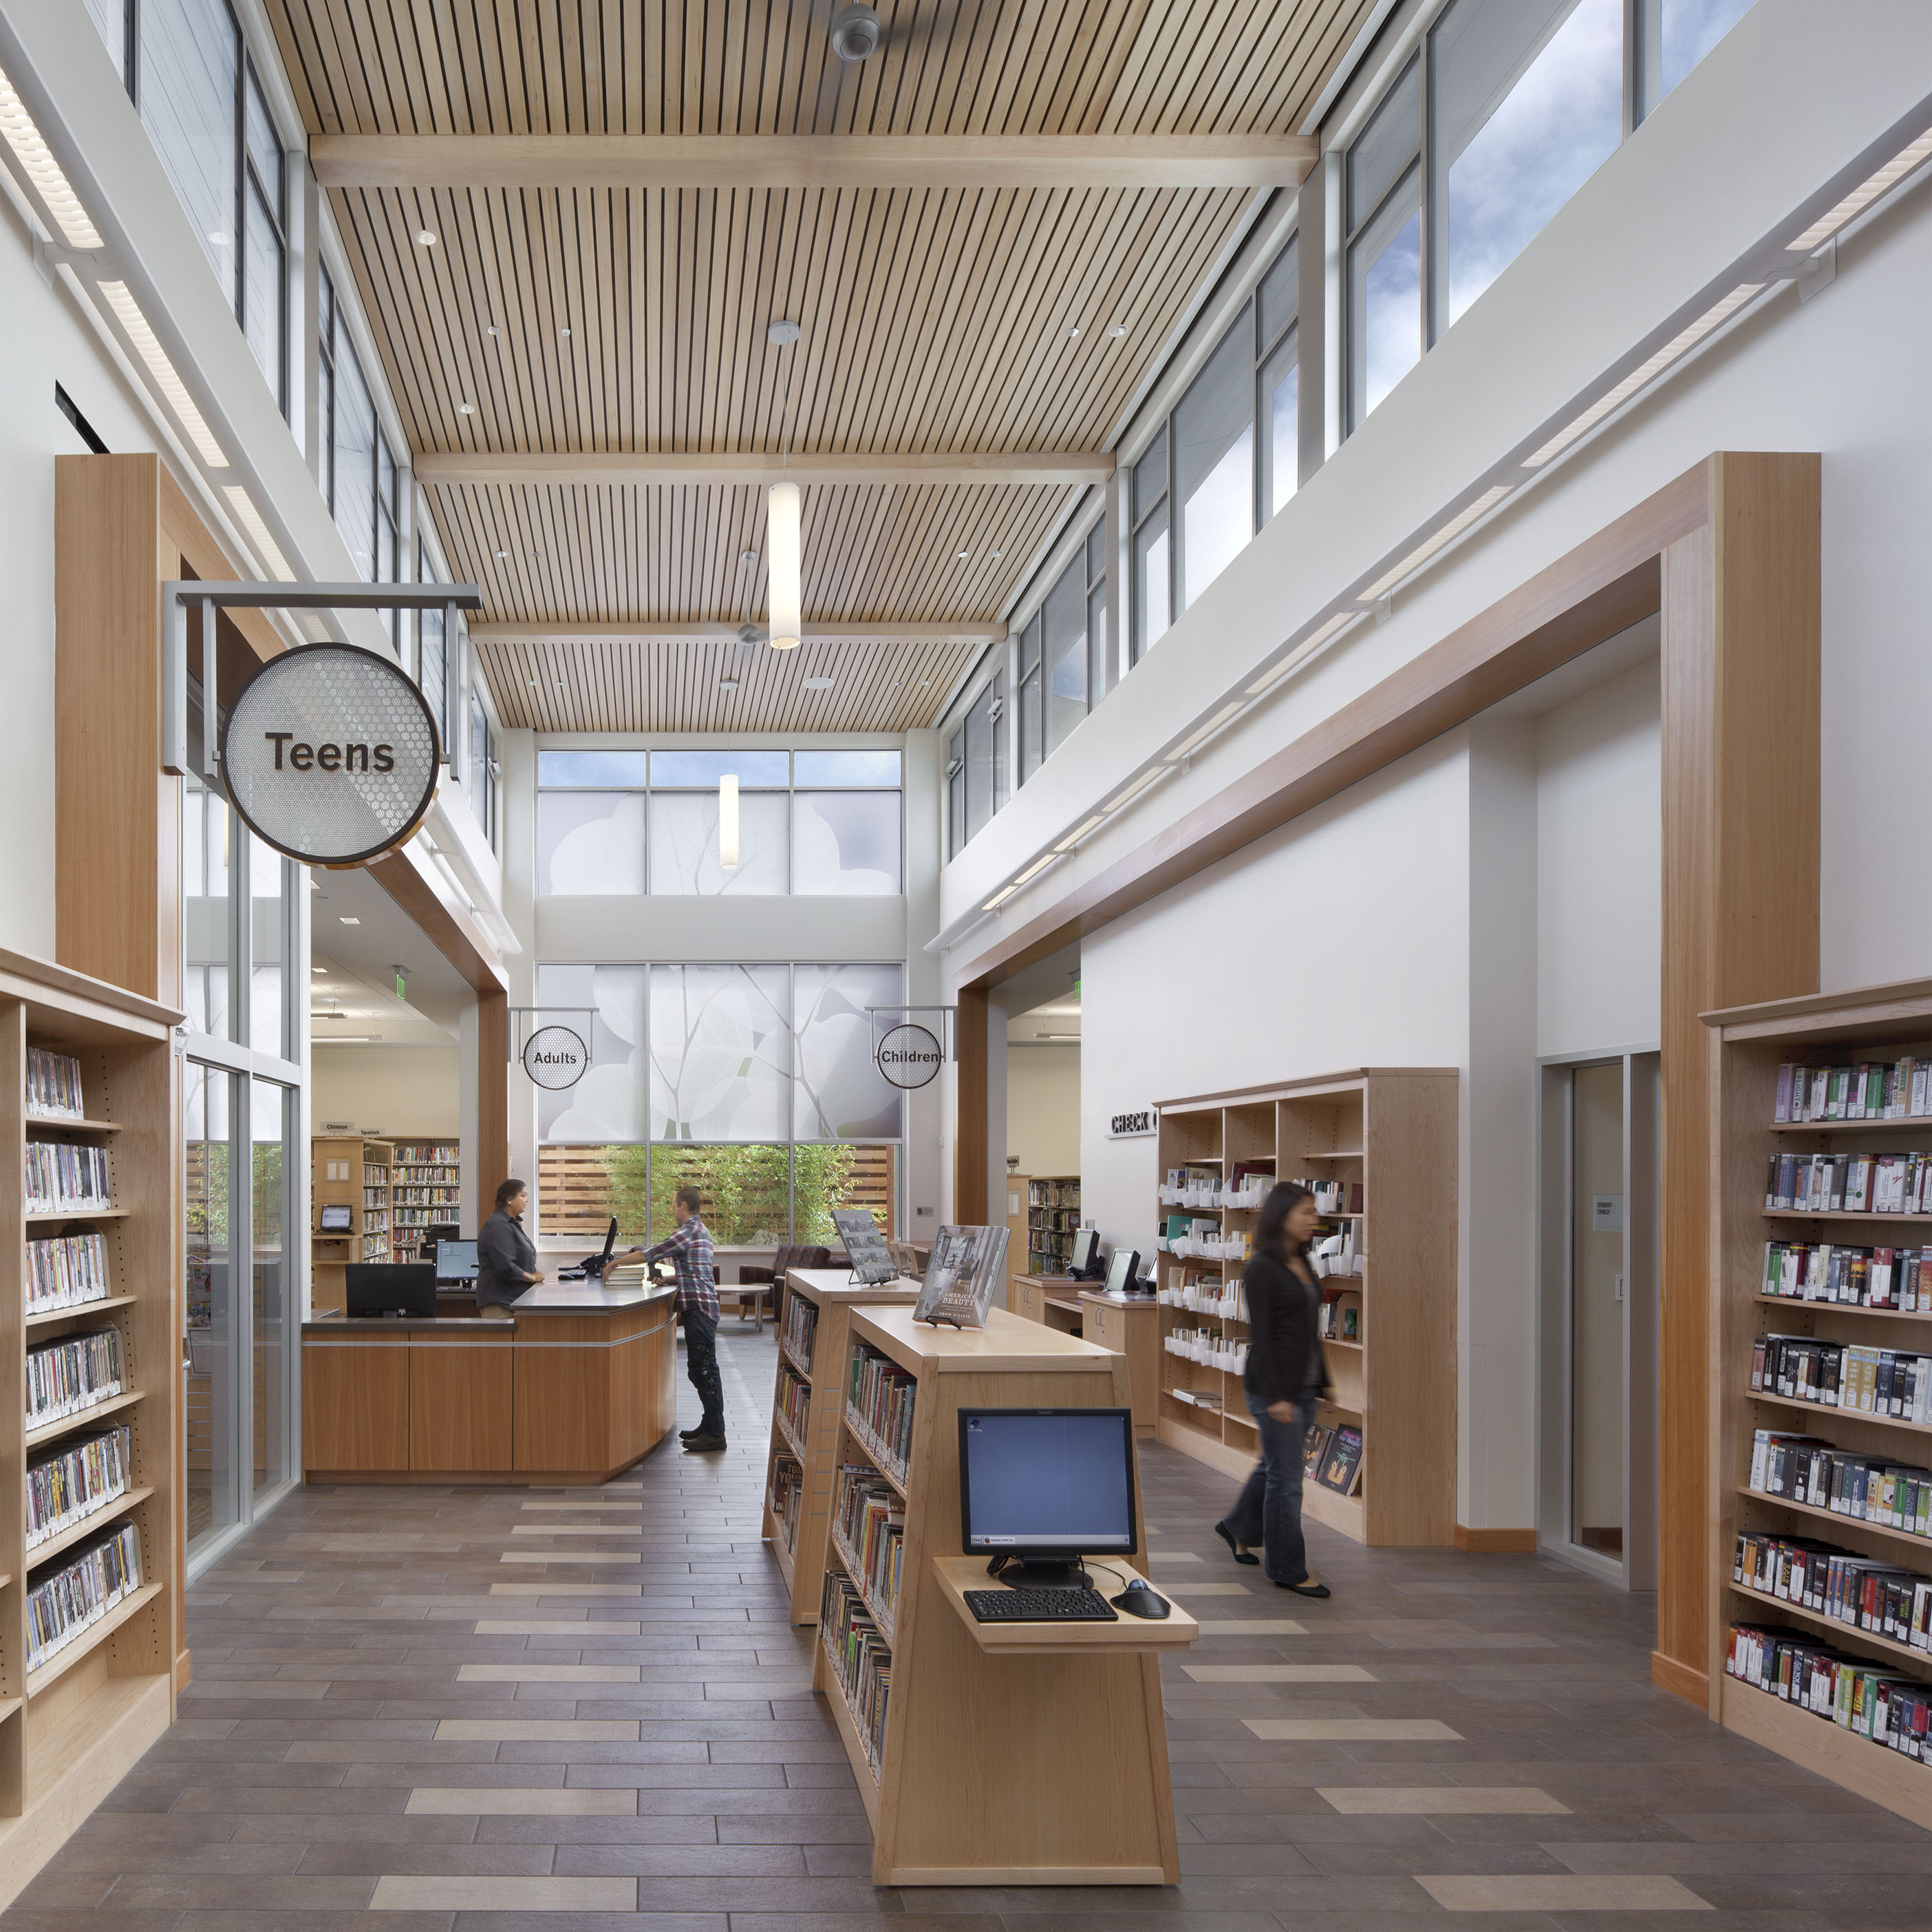 Berkeley Public Library Leads The Way With Leed Gold Certification For Newly Opened South Branch